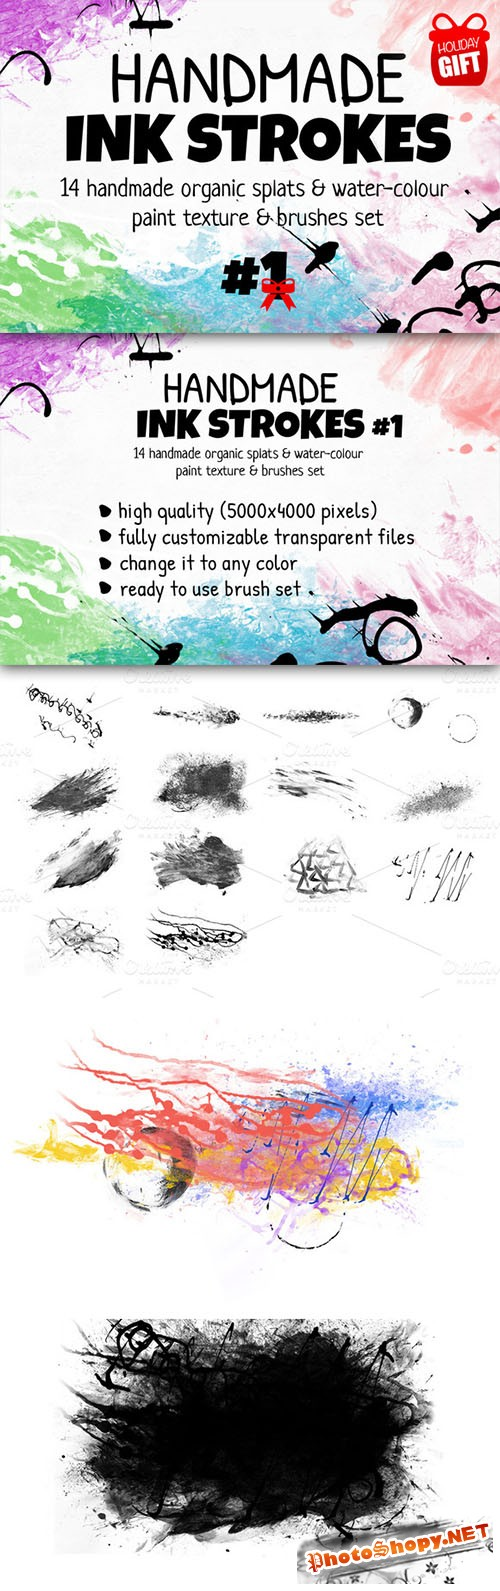 Handmade Ink Strokes Photoshop Brushes